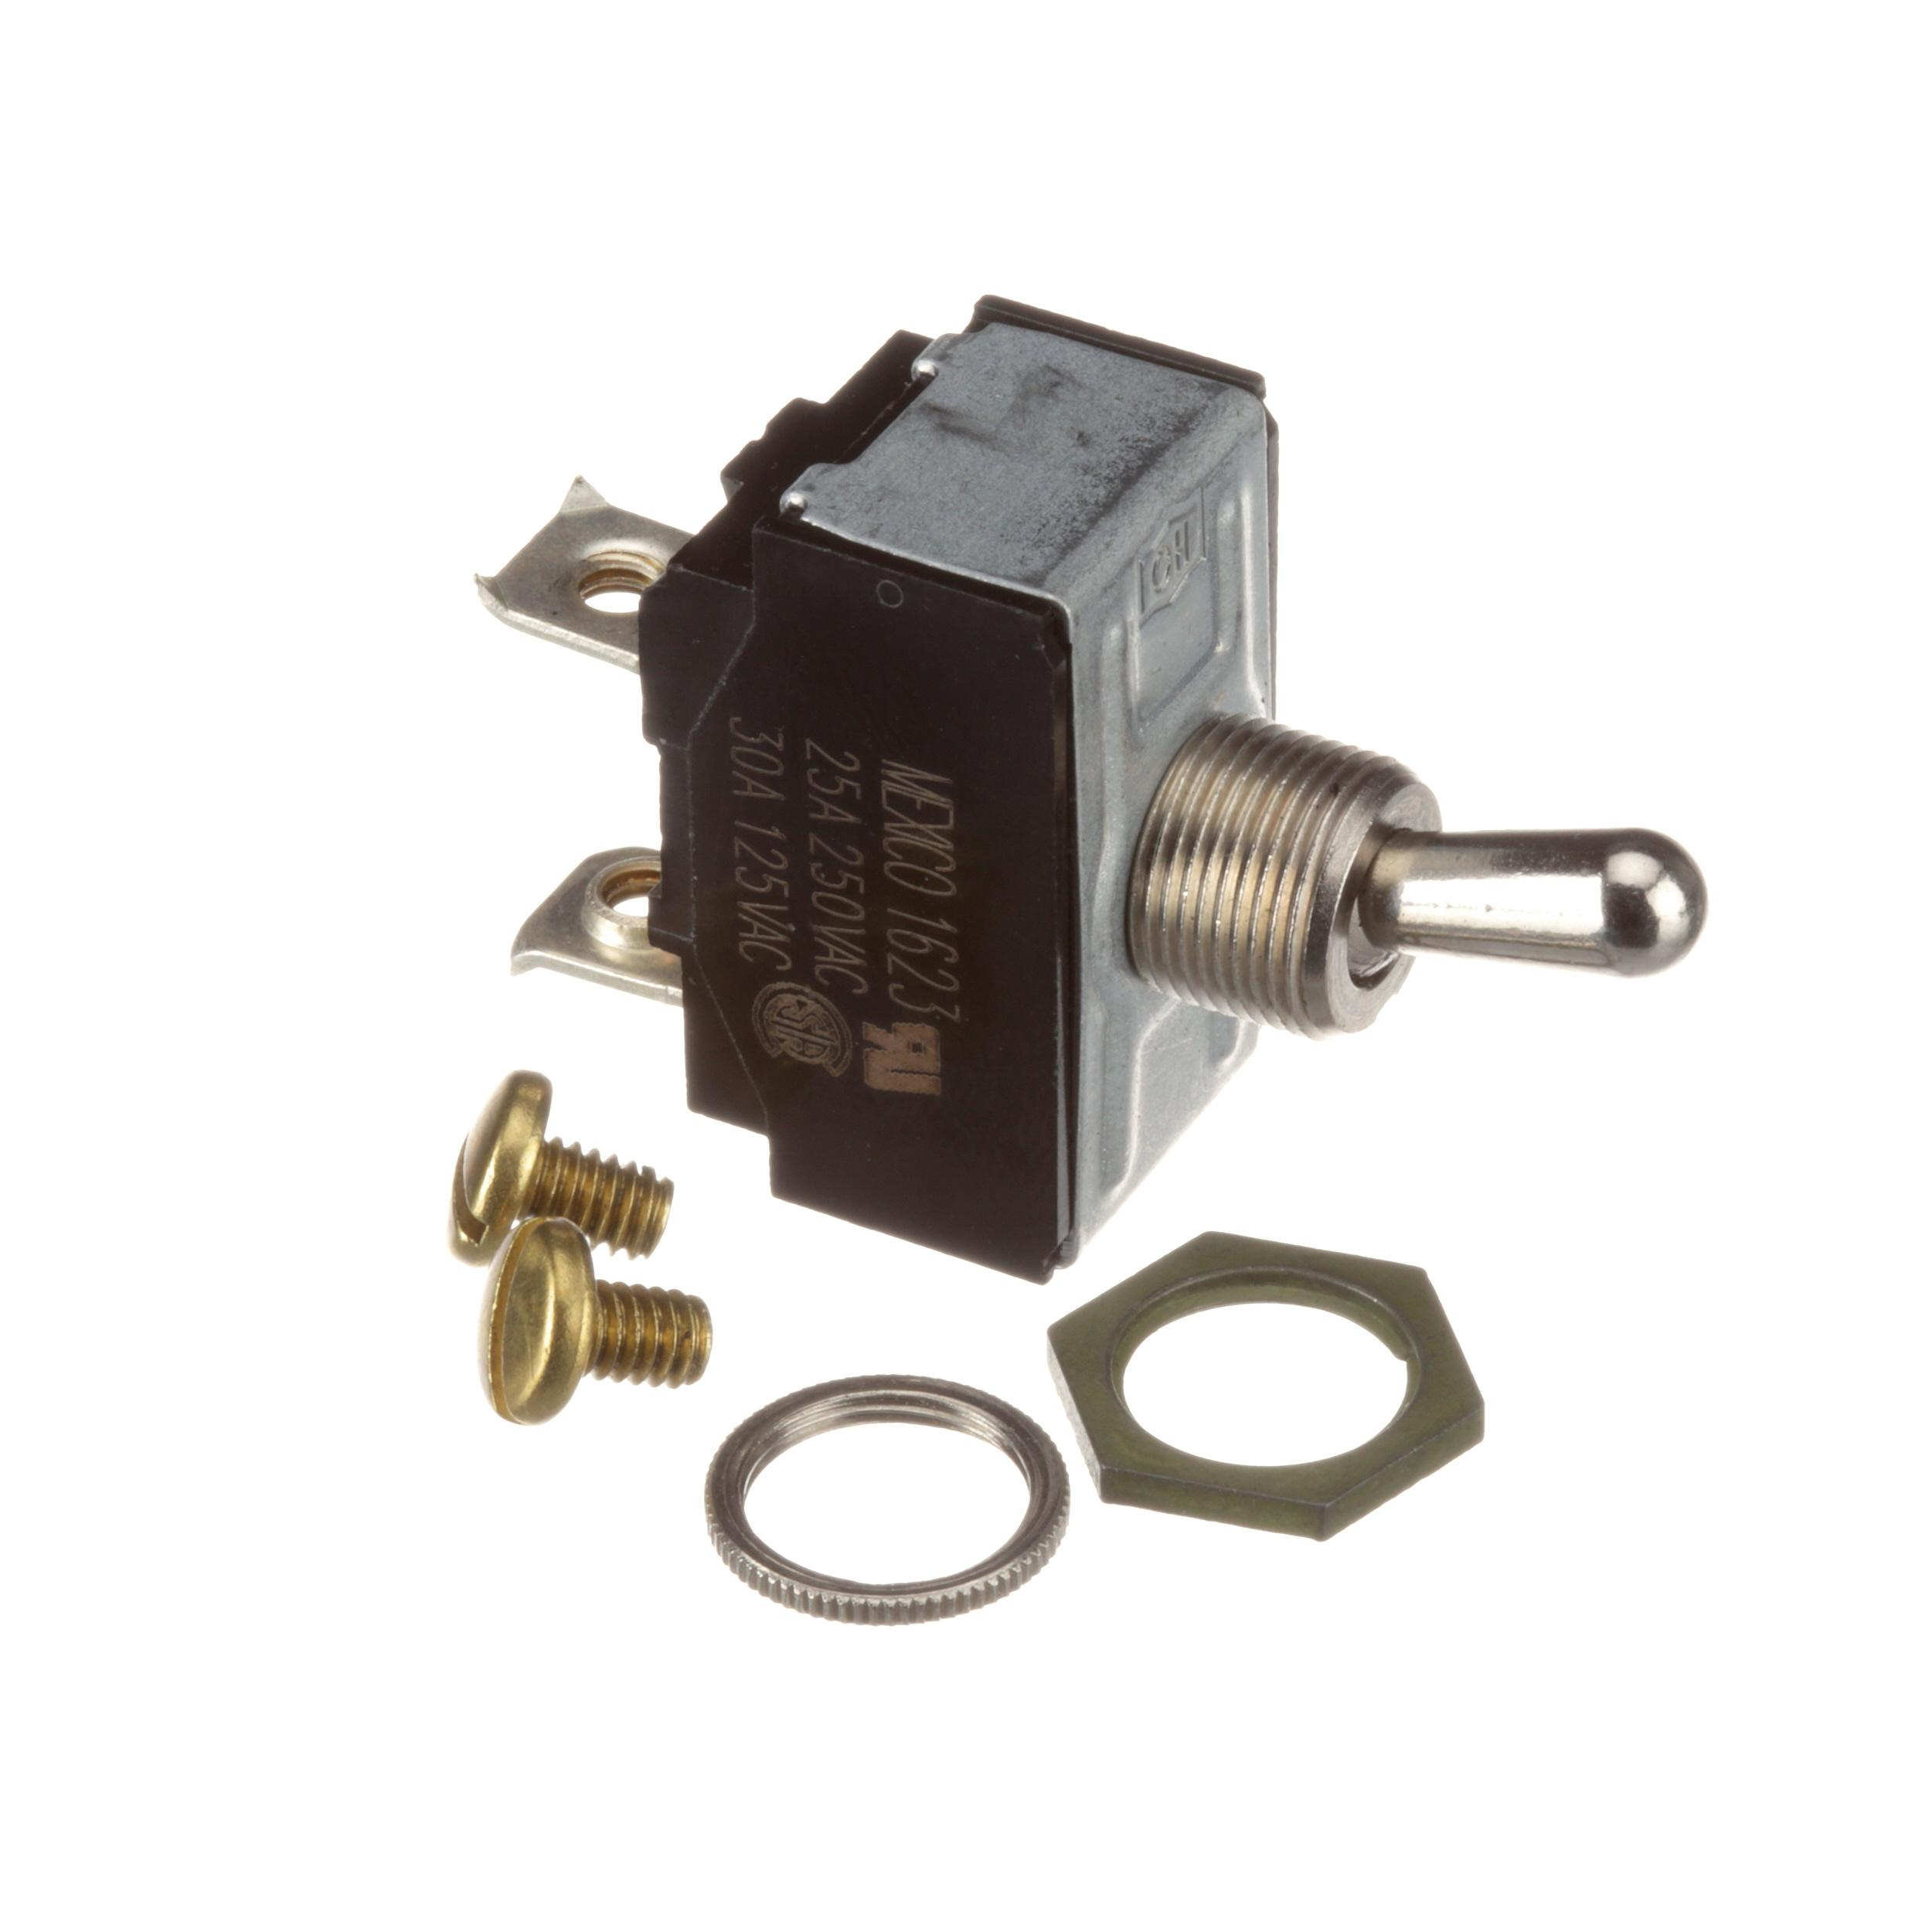 CARTER-HOFFMANN TOGGLE SWITCH